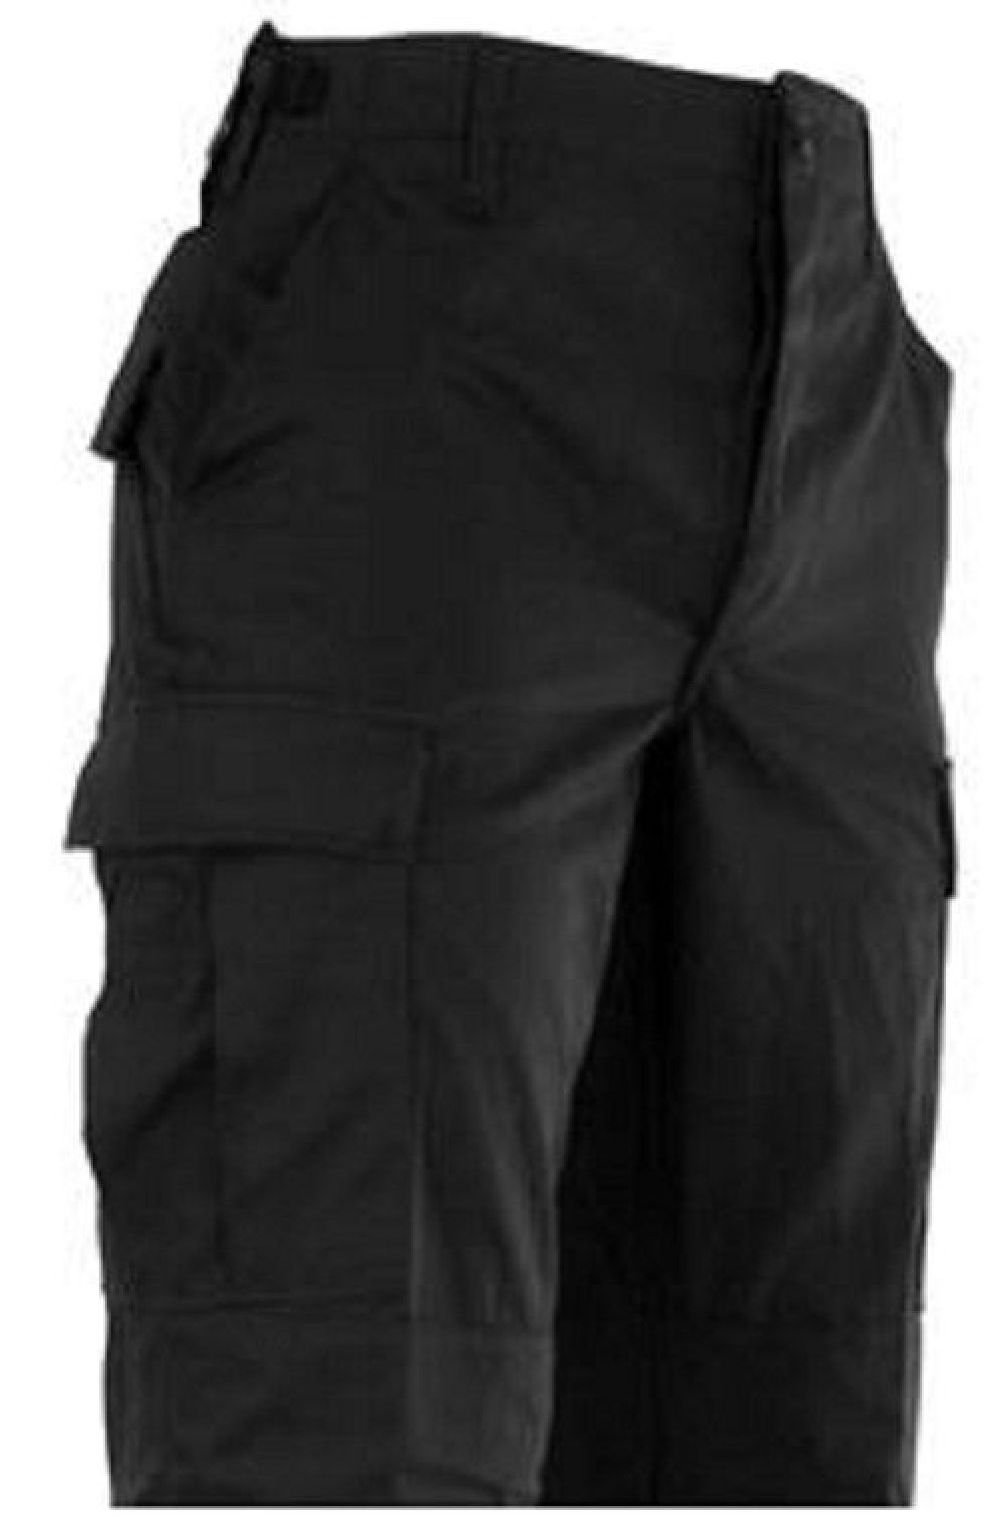 Bellawjace Clothing Black Relaxed Fit Military Zipper Fly X- Long BDU Cargo Shorts Poly/Cot